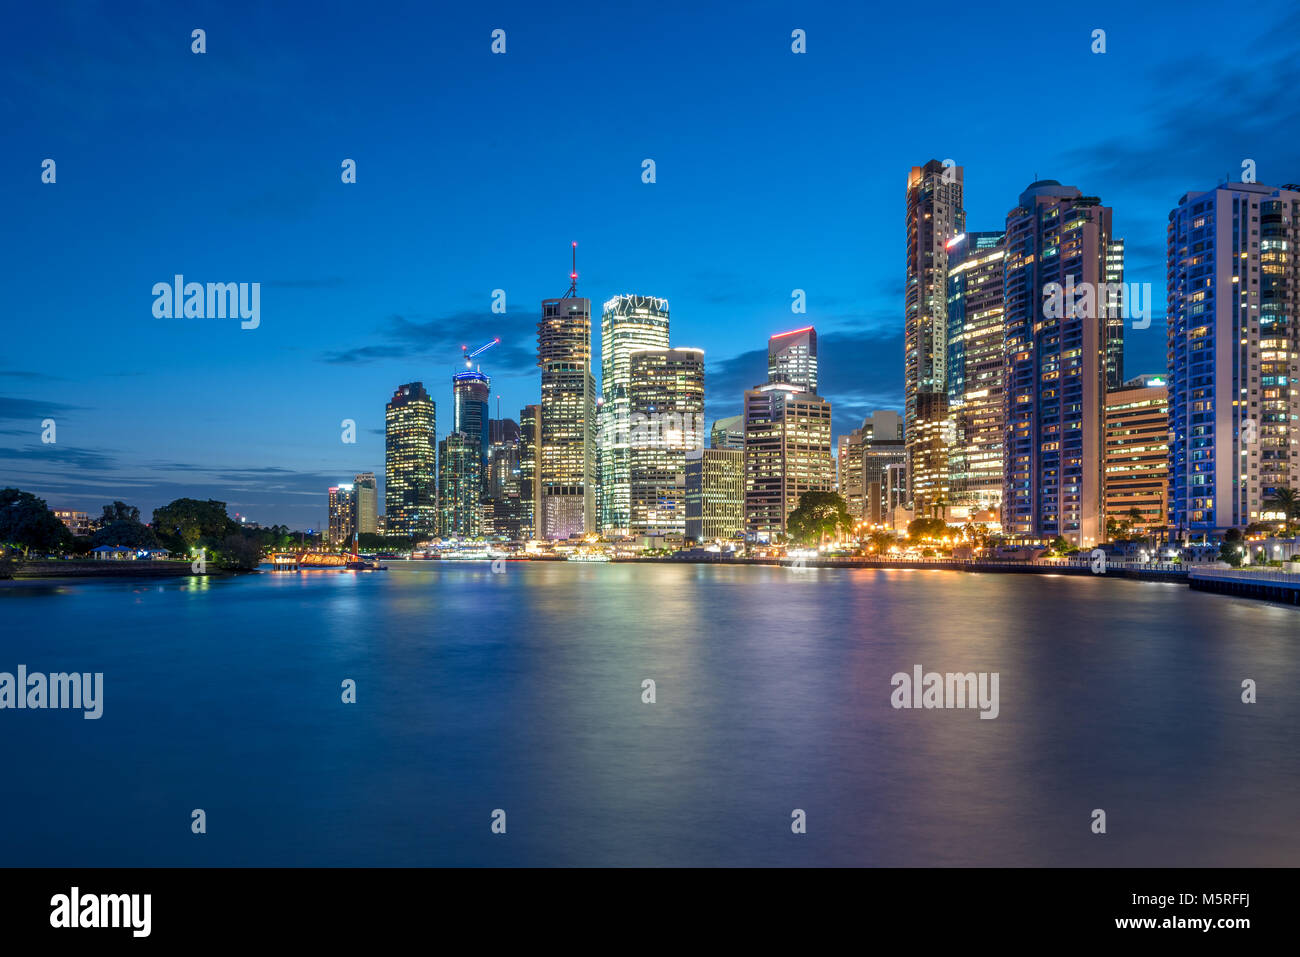 Brisbane, Queensland, Australia Central Business District on Brisbane River viewed at night - Stock Image